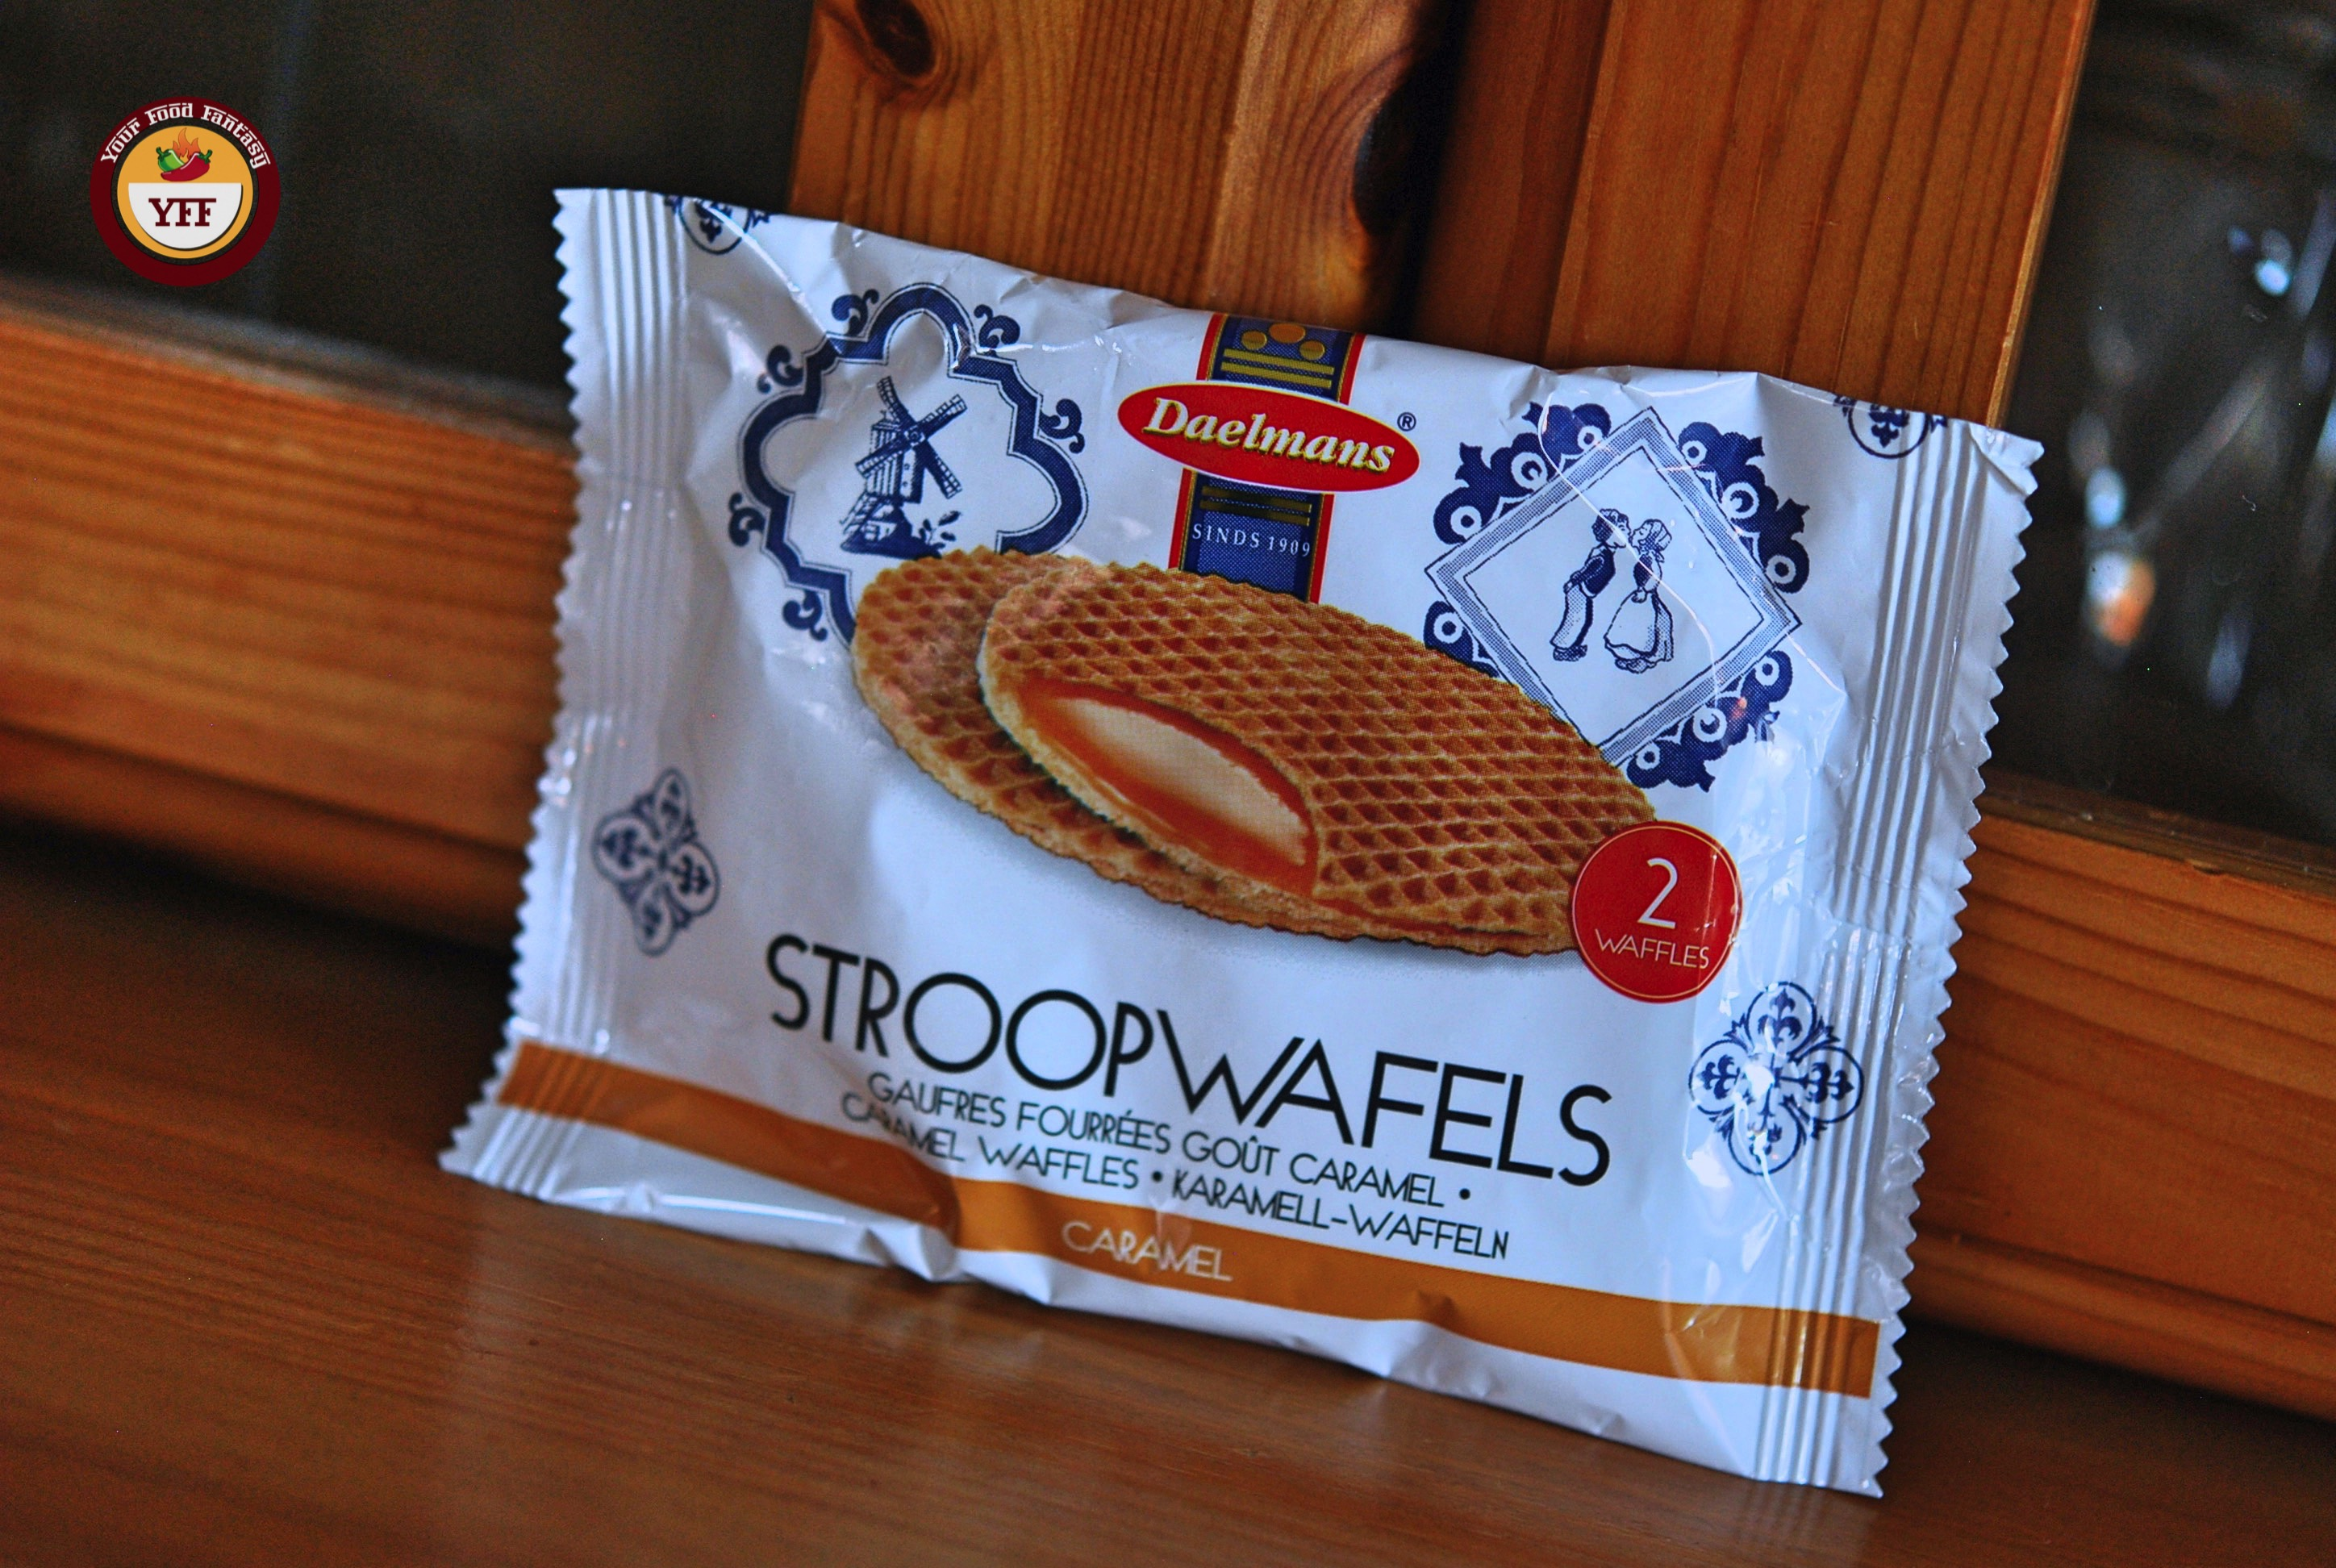 Stroopwafels Review by Your Food Fantasy